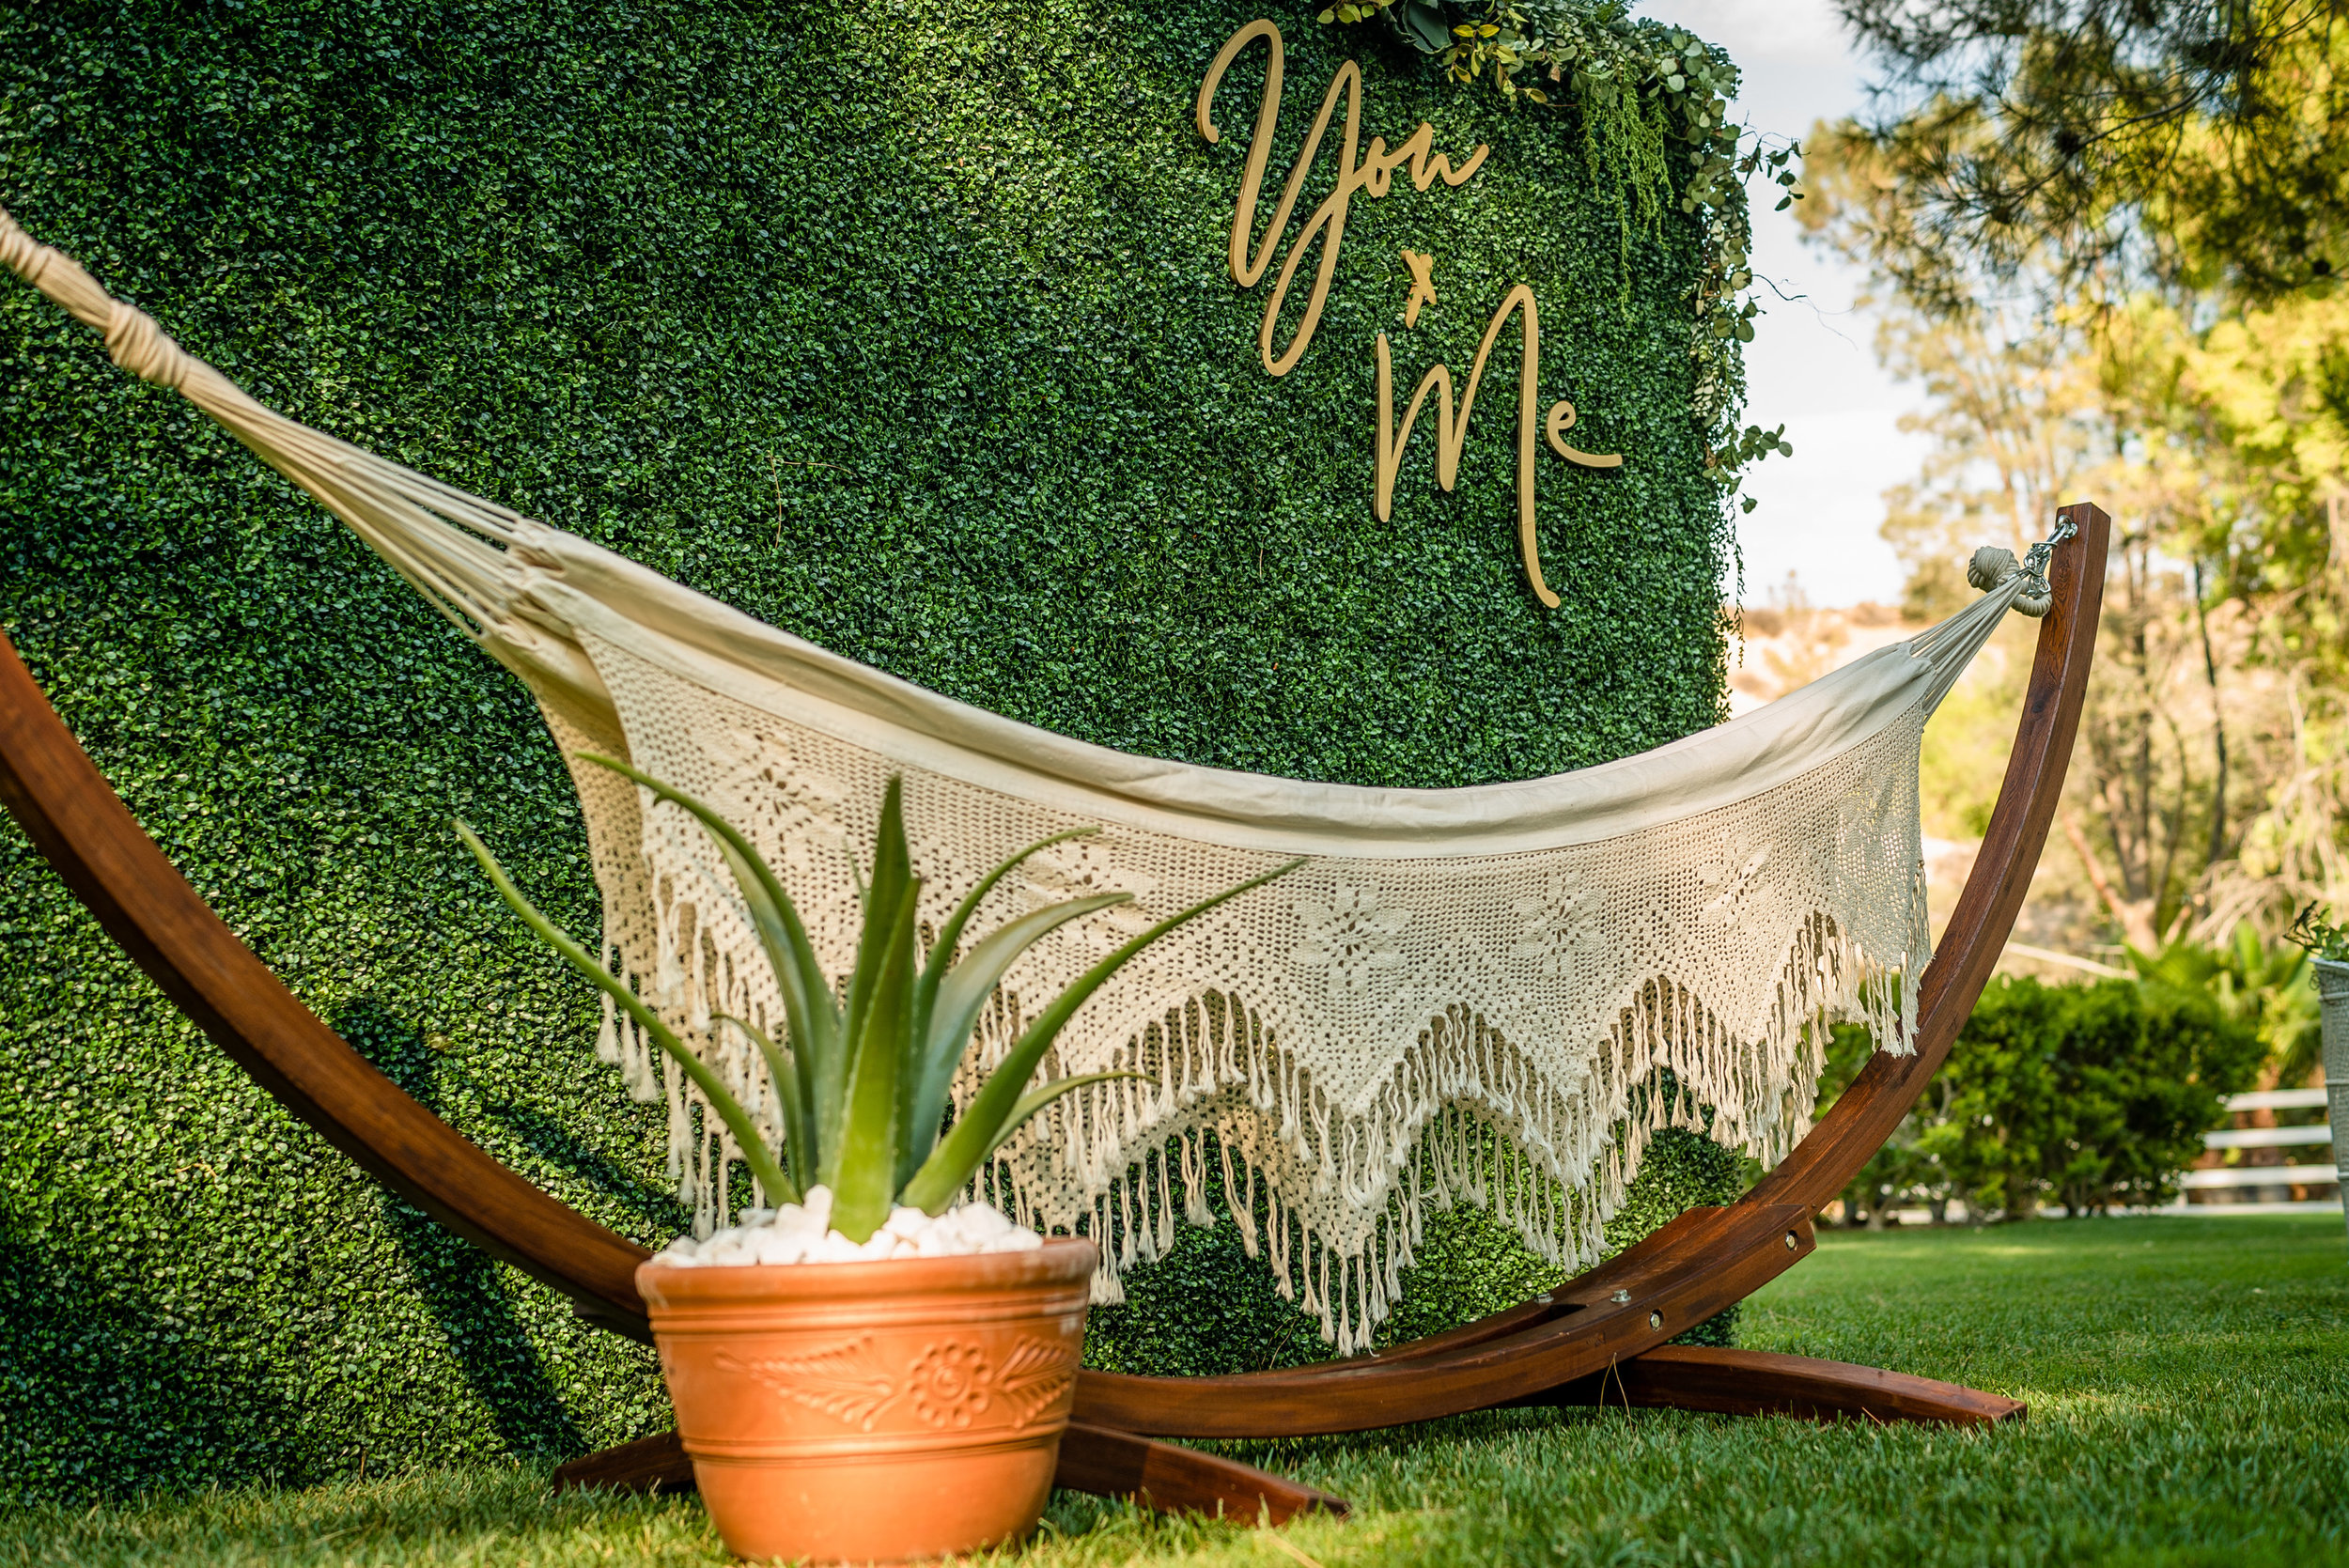 Styling & Set-up:  Eyesome Events  | Signage:  Unshakably Unique  | Hammock:  Ten Four Decor  | Photo:  Super Million Visuals